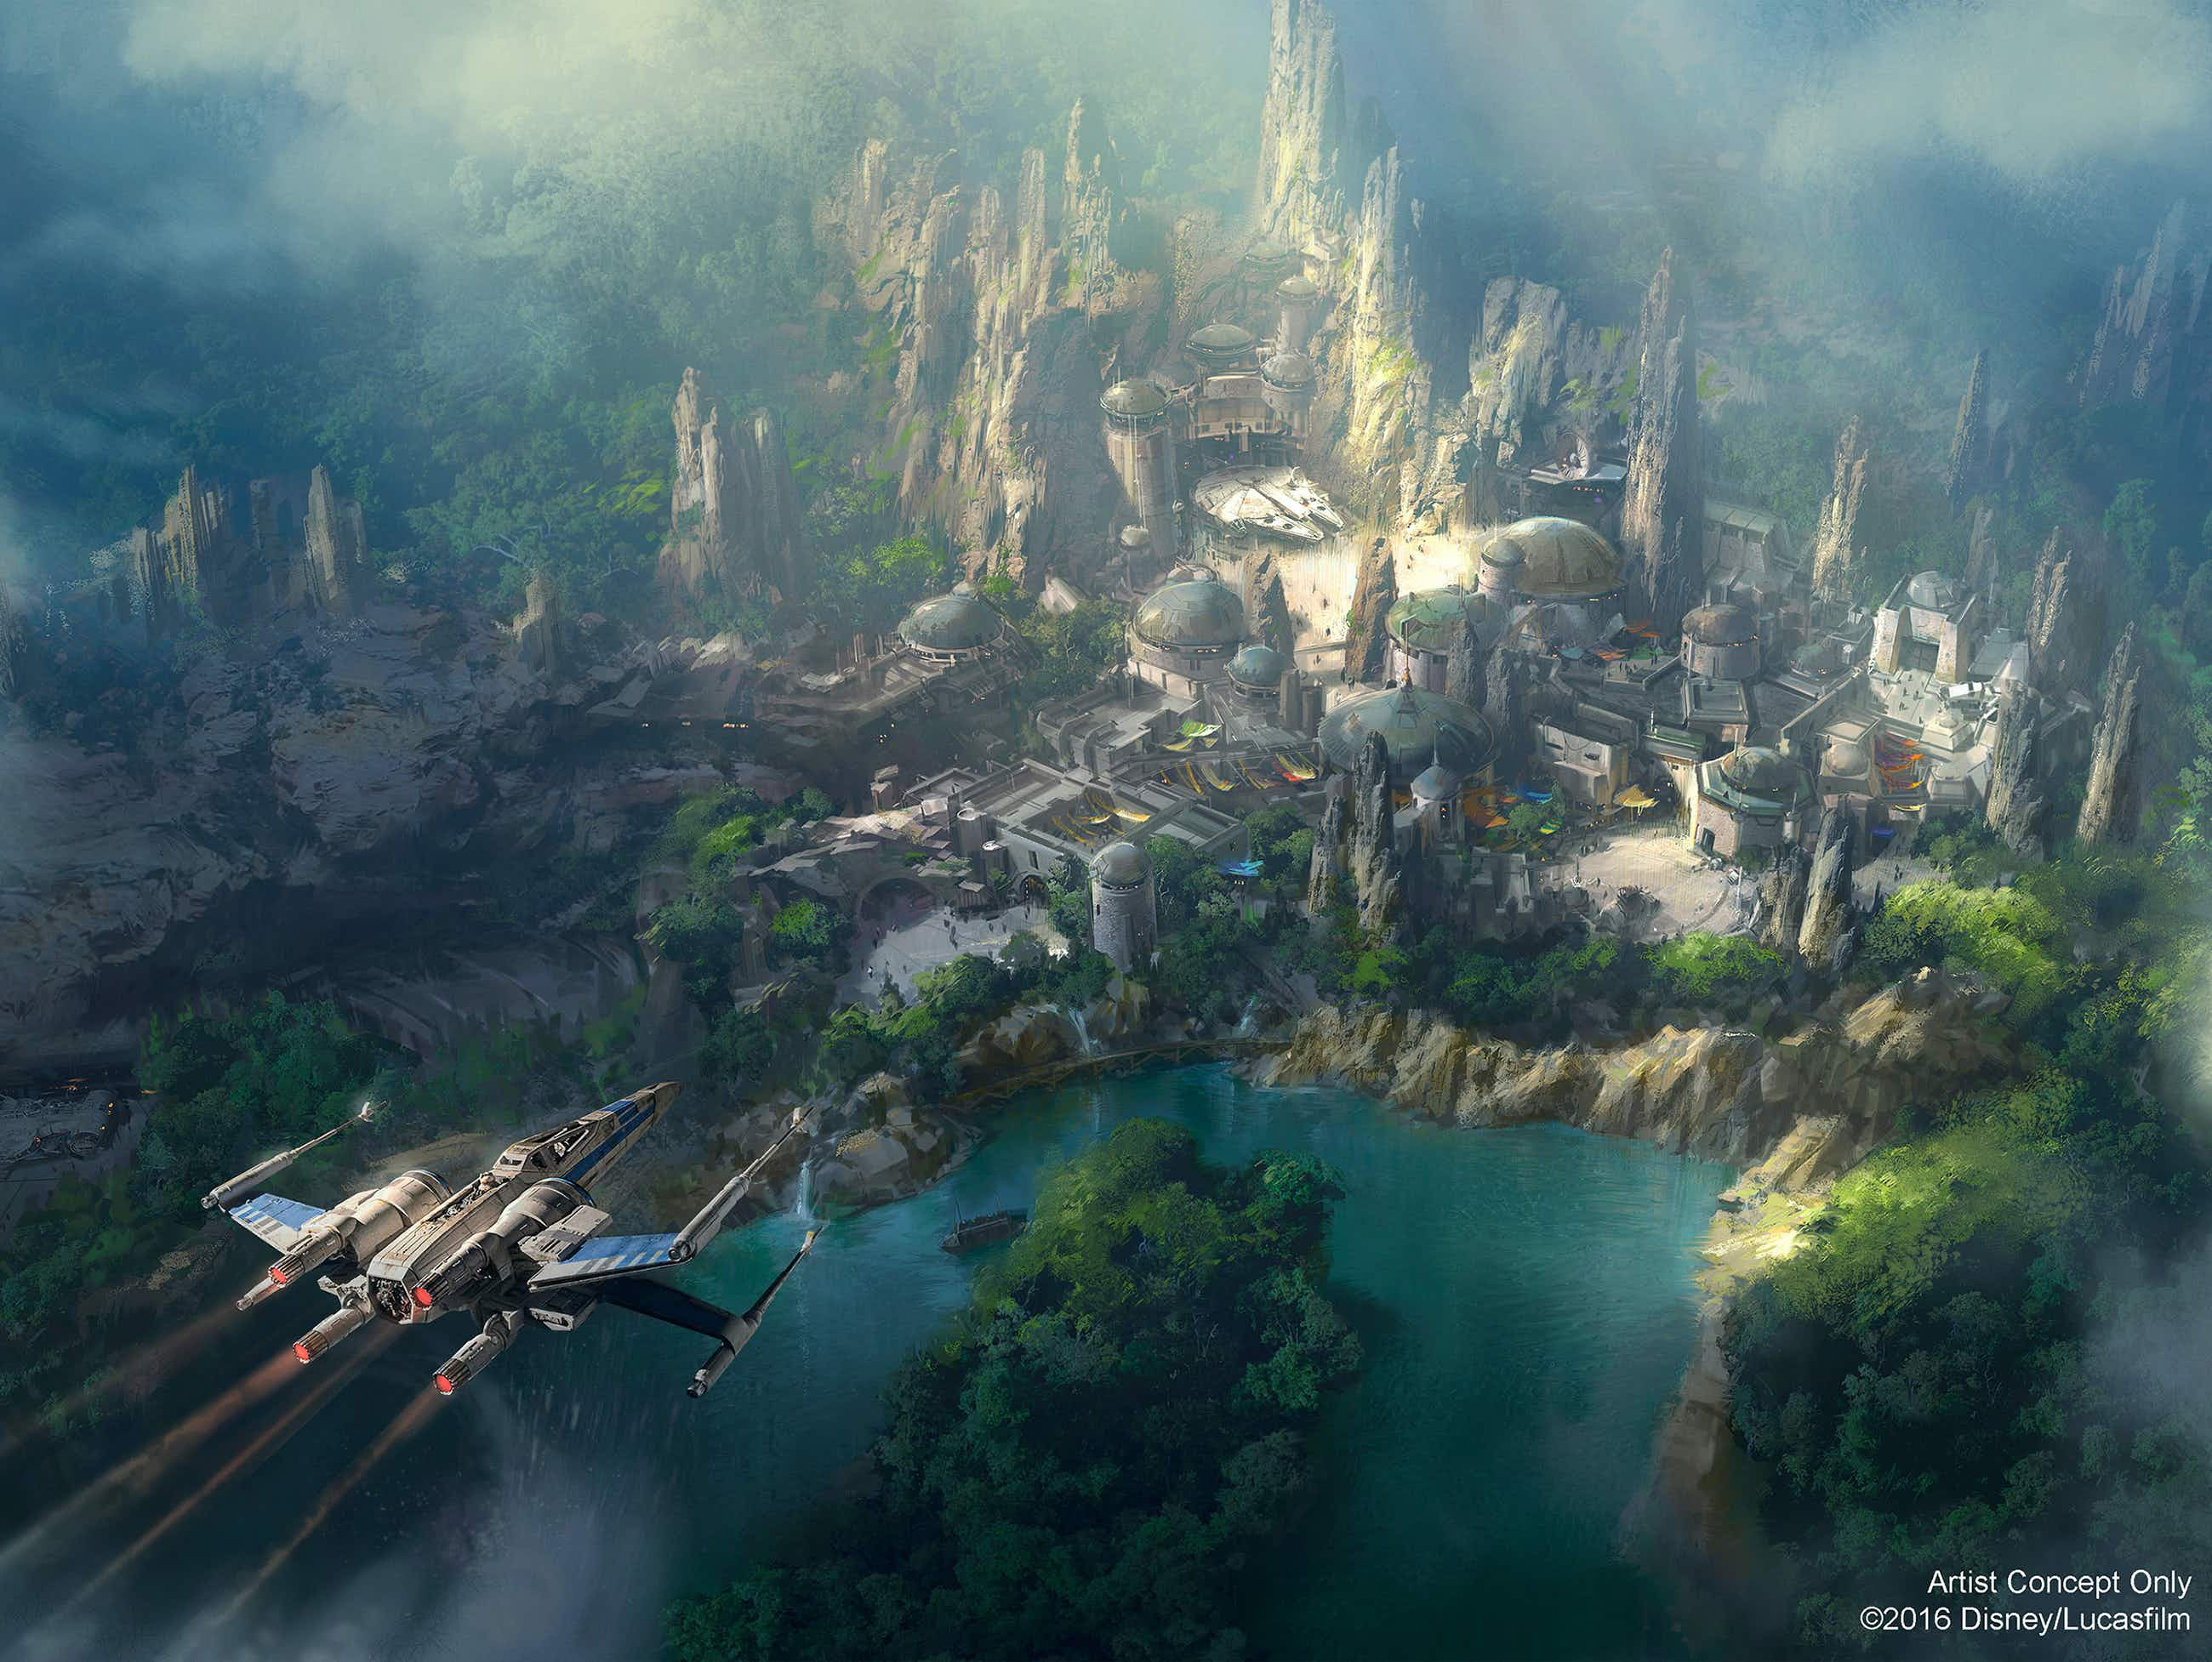 Disney's Star Wars Land is going to be fully interactive